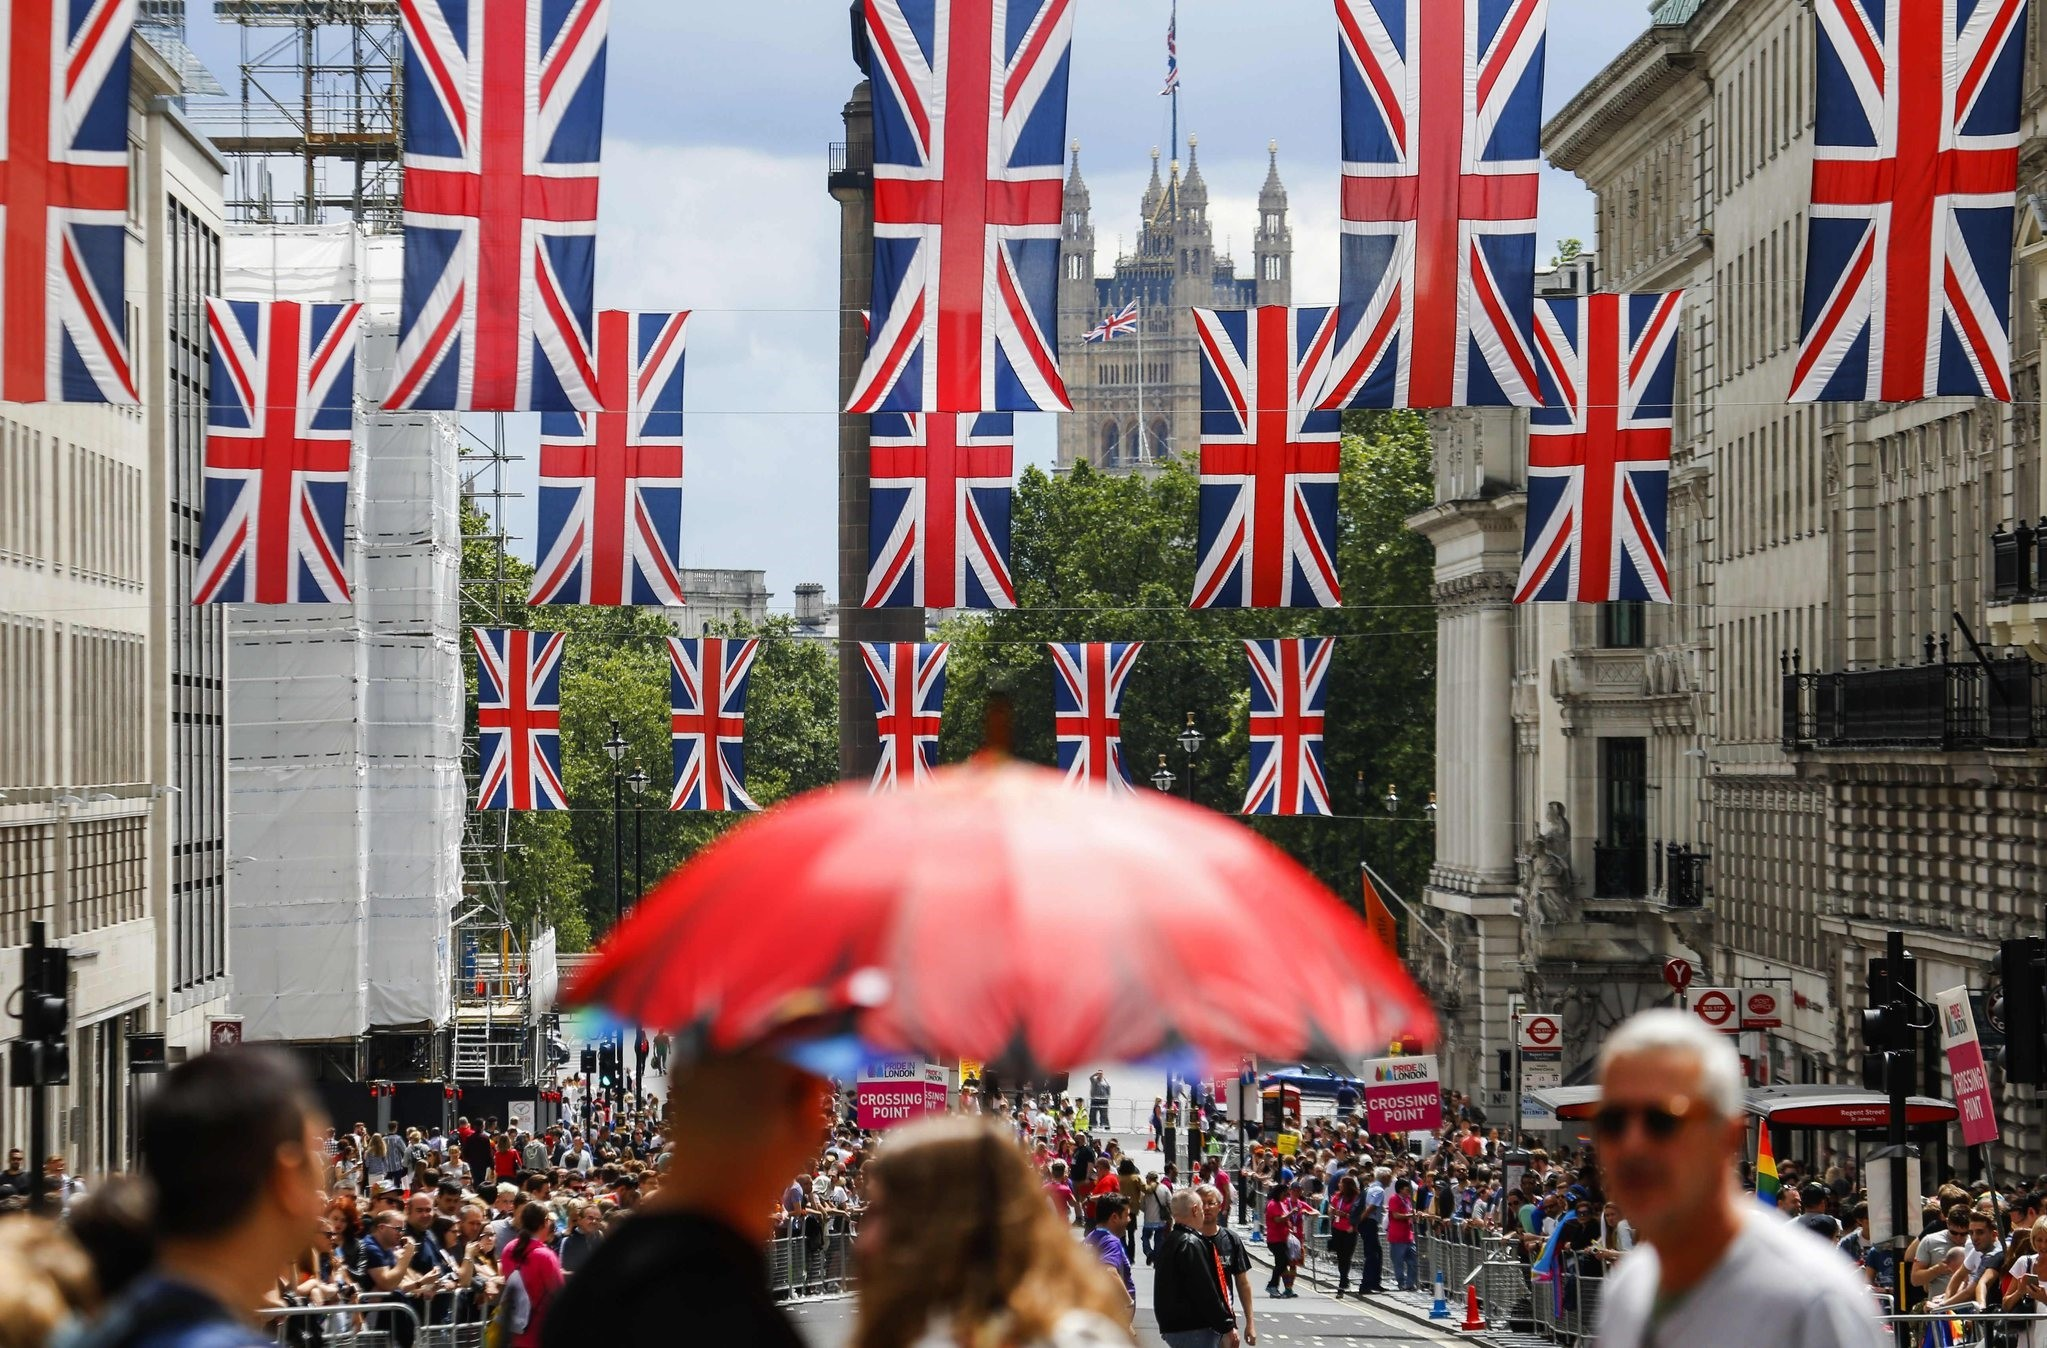 British flag banners hang across a street near the houses of Parliament in Central London after the announcement of results of shocking Brexit vote, June 25, 2016. (AFP Photo)